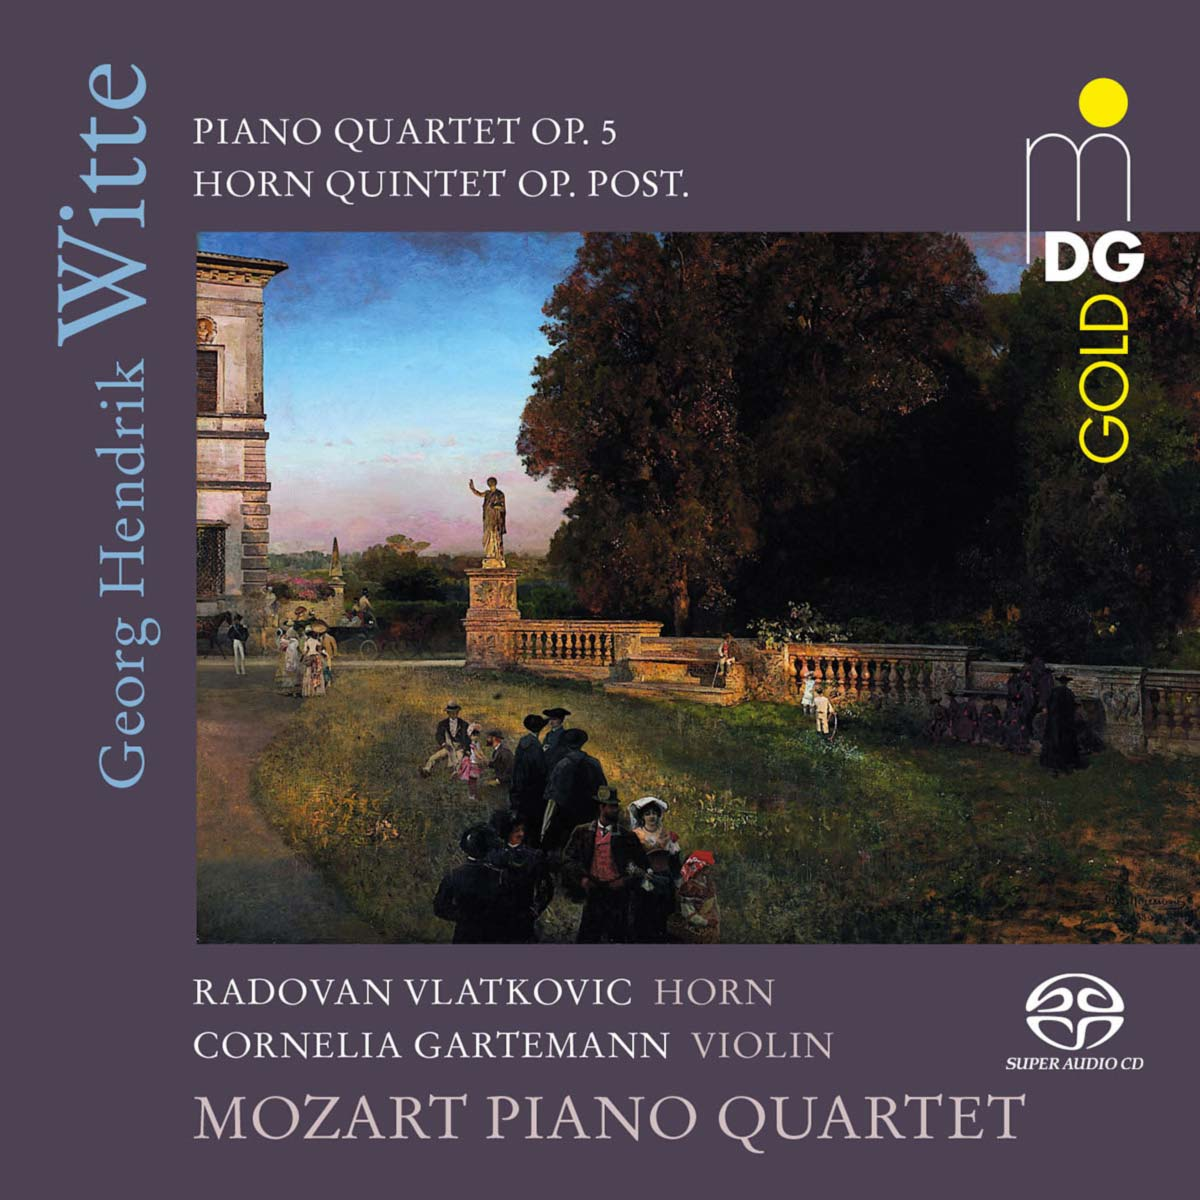 CD Georg Hendrik Witte - Chamber Music by the Mozart Piano Quartet, Cover © Dabringhaus und Grimm Audiovision GmbH